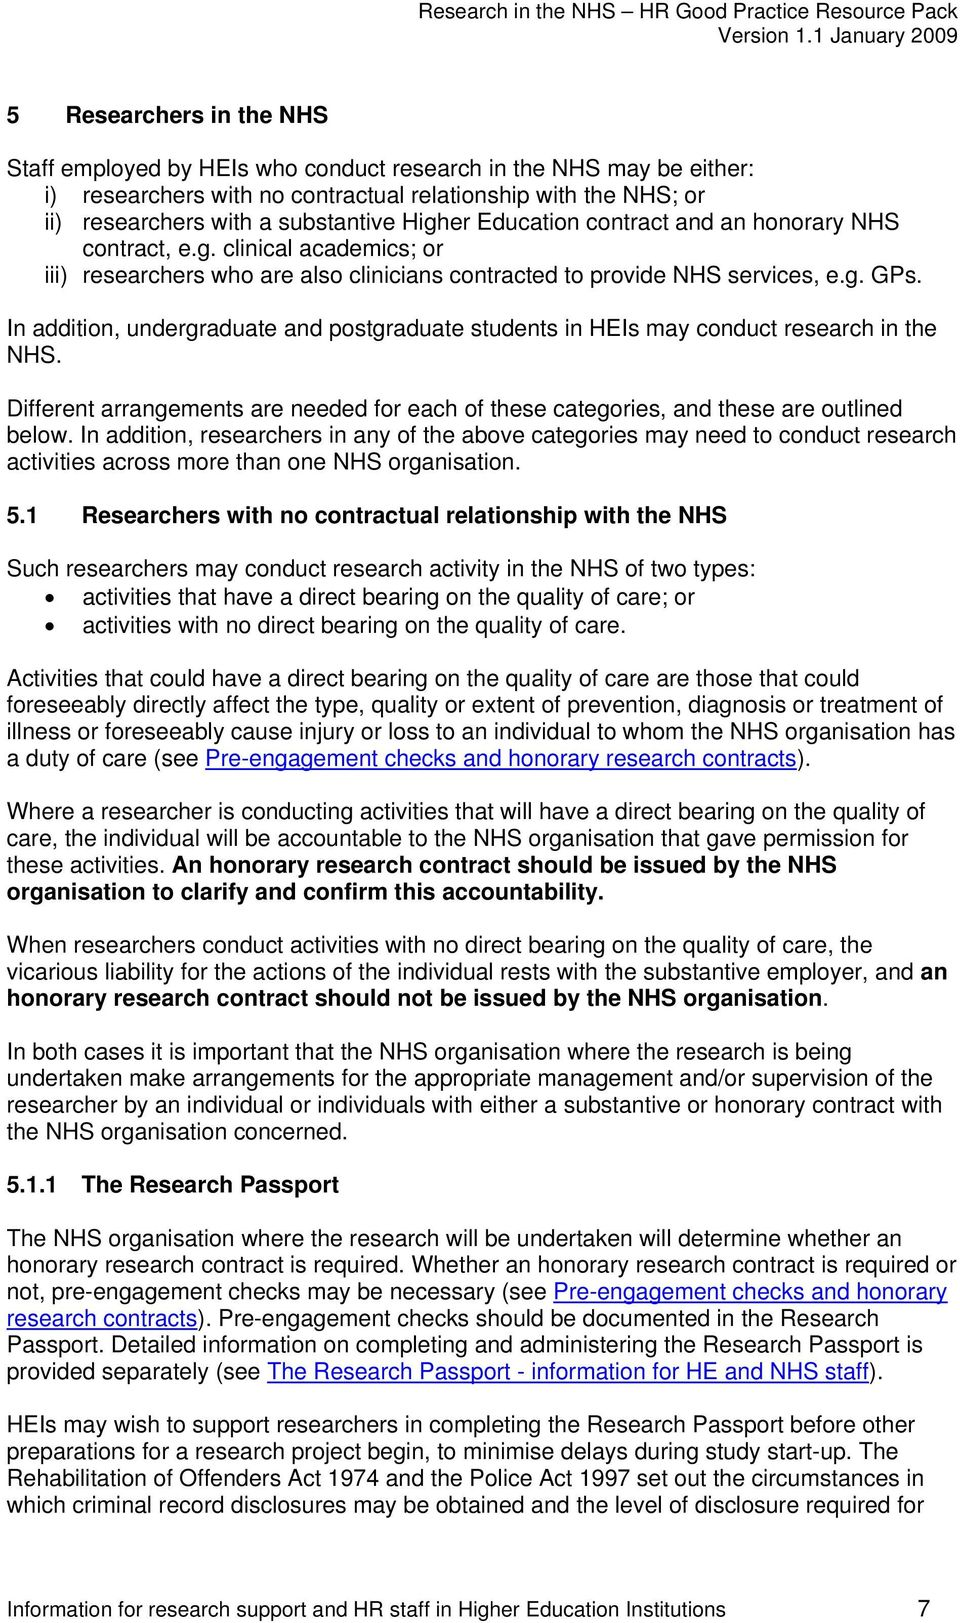 In addition, undergraduate and postgraduate students in HEIs may conduct research in the NHS. Different arrangements are needed for each of these categories, and these are outlined below.